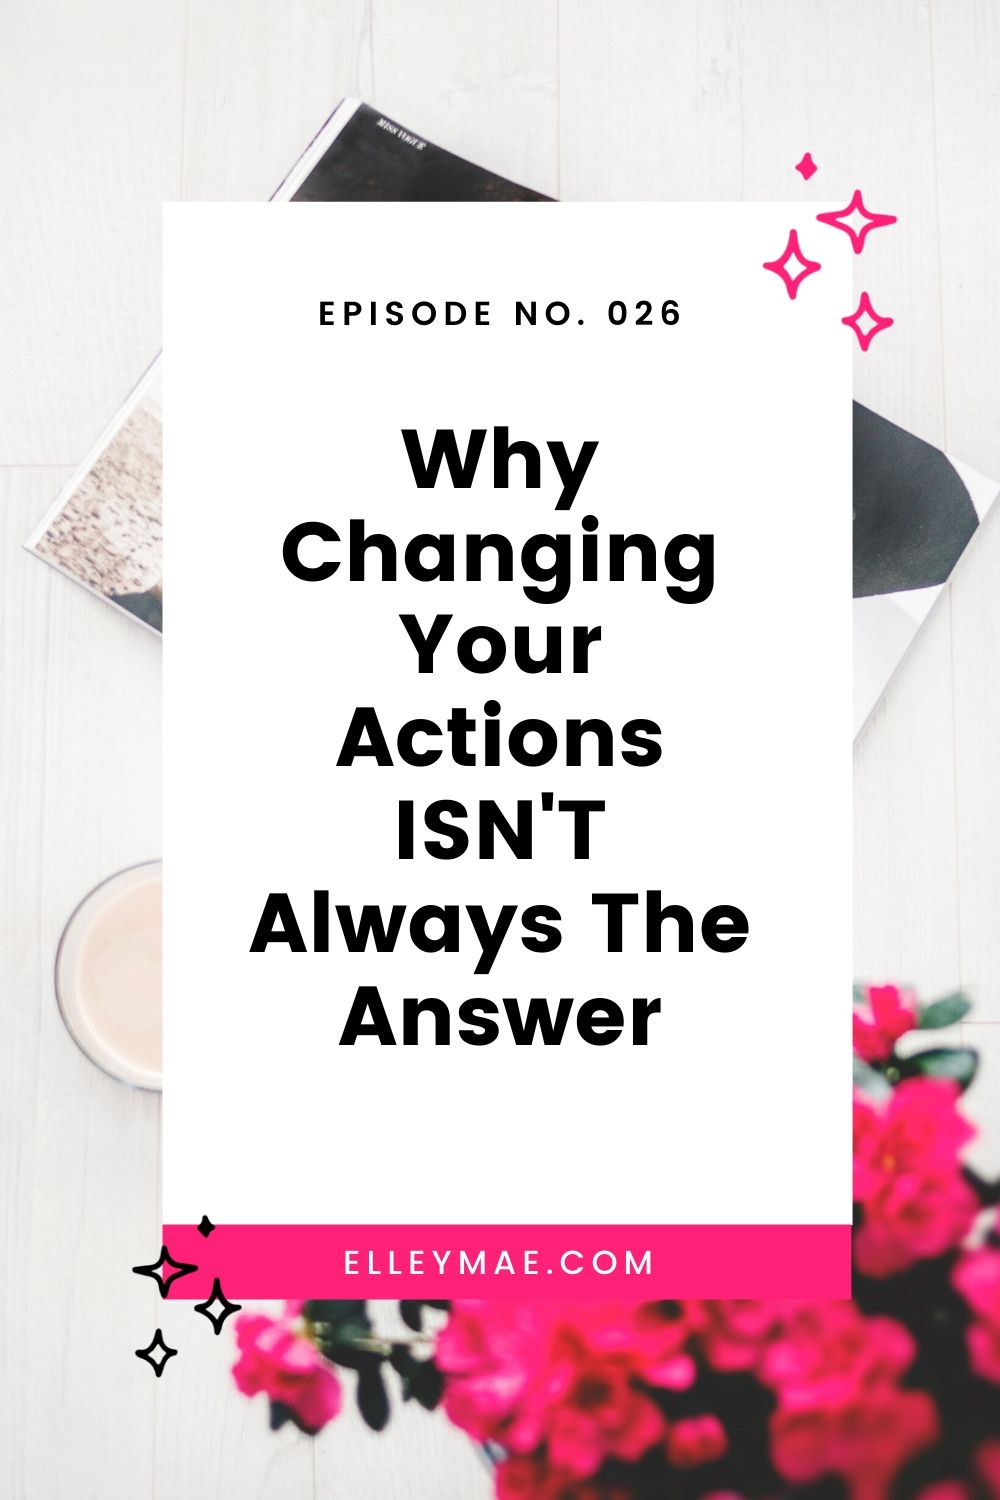 Why Changing Your Actions ISN'T Always The Answer